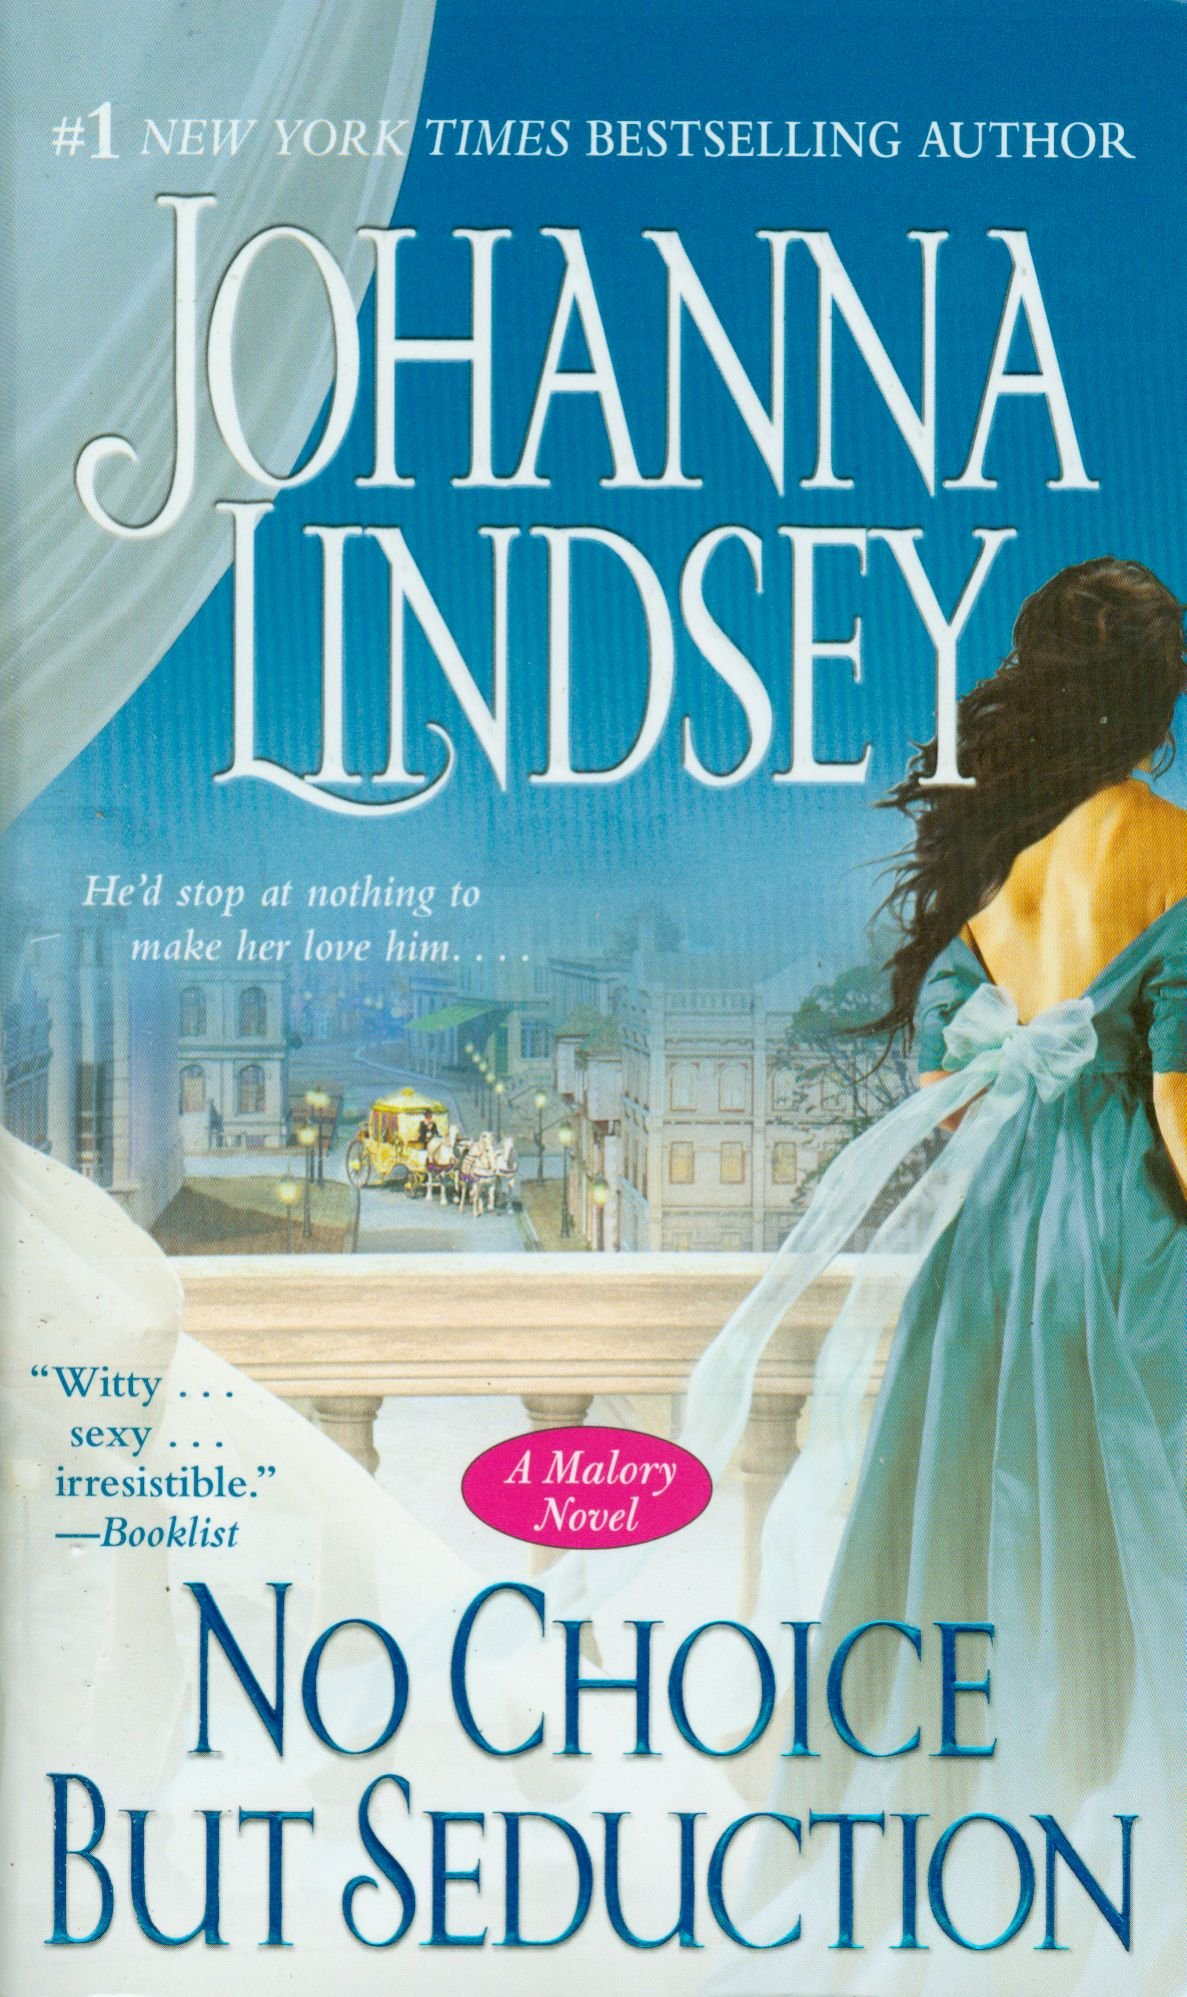 No Choice But Seduction: A Malory Novel (maloryanderson Family): Johanna  Lindsey: 9781416537335: Amazon: Books